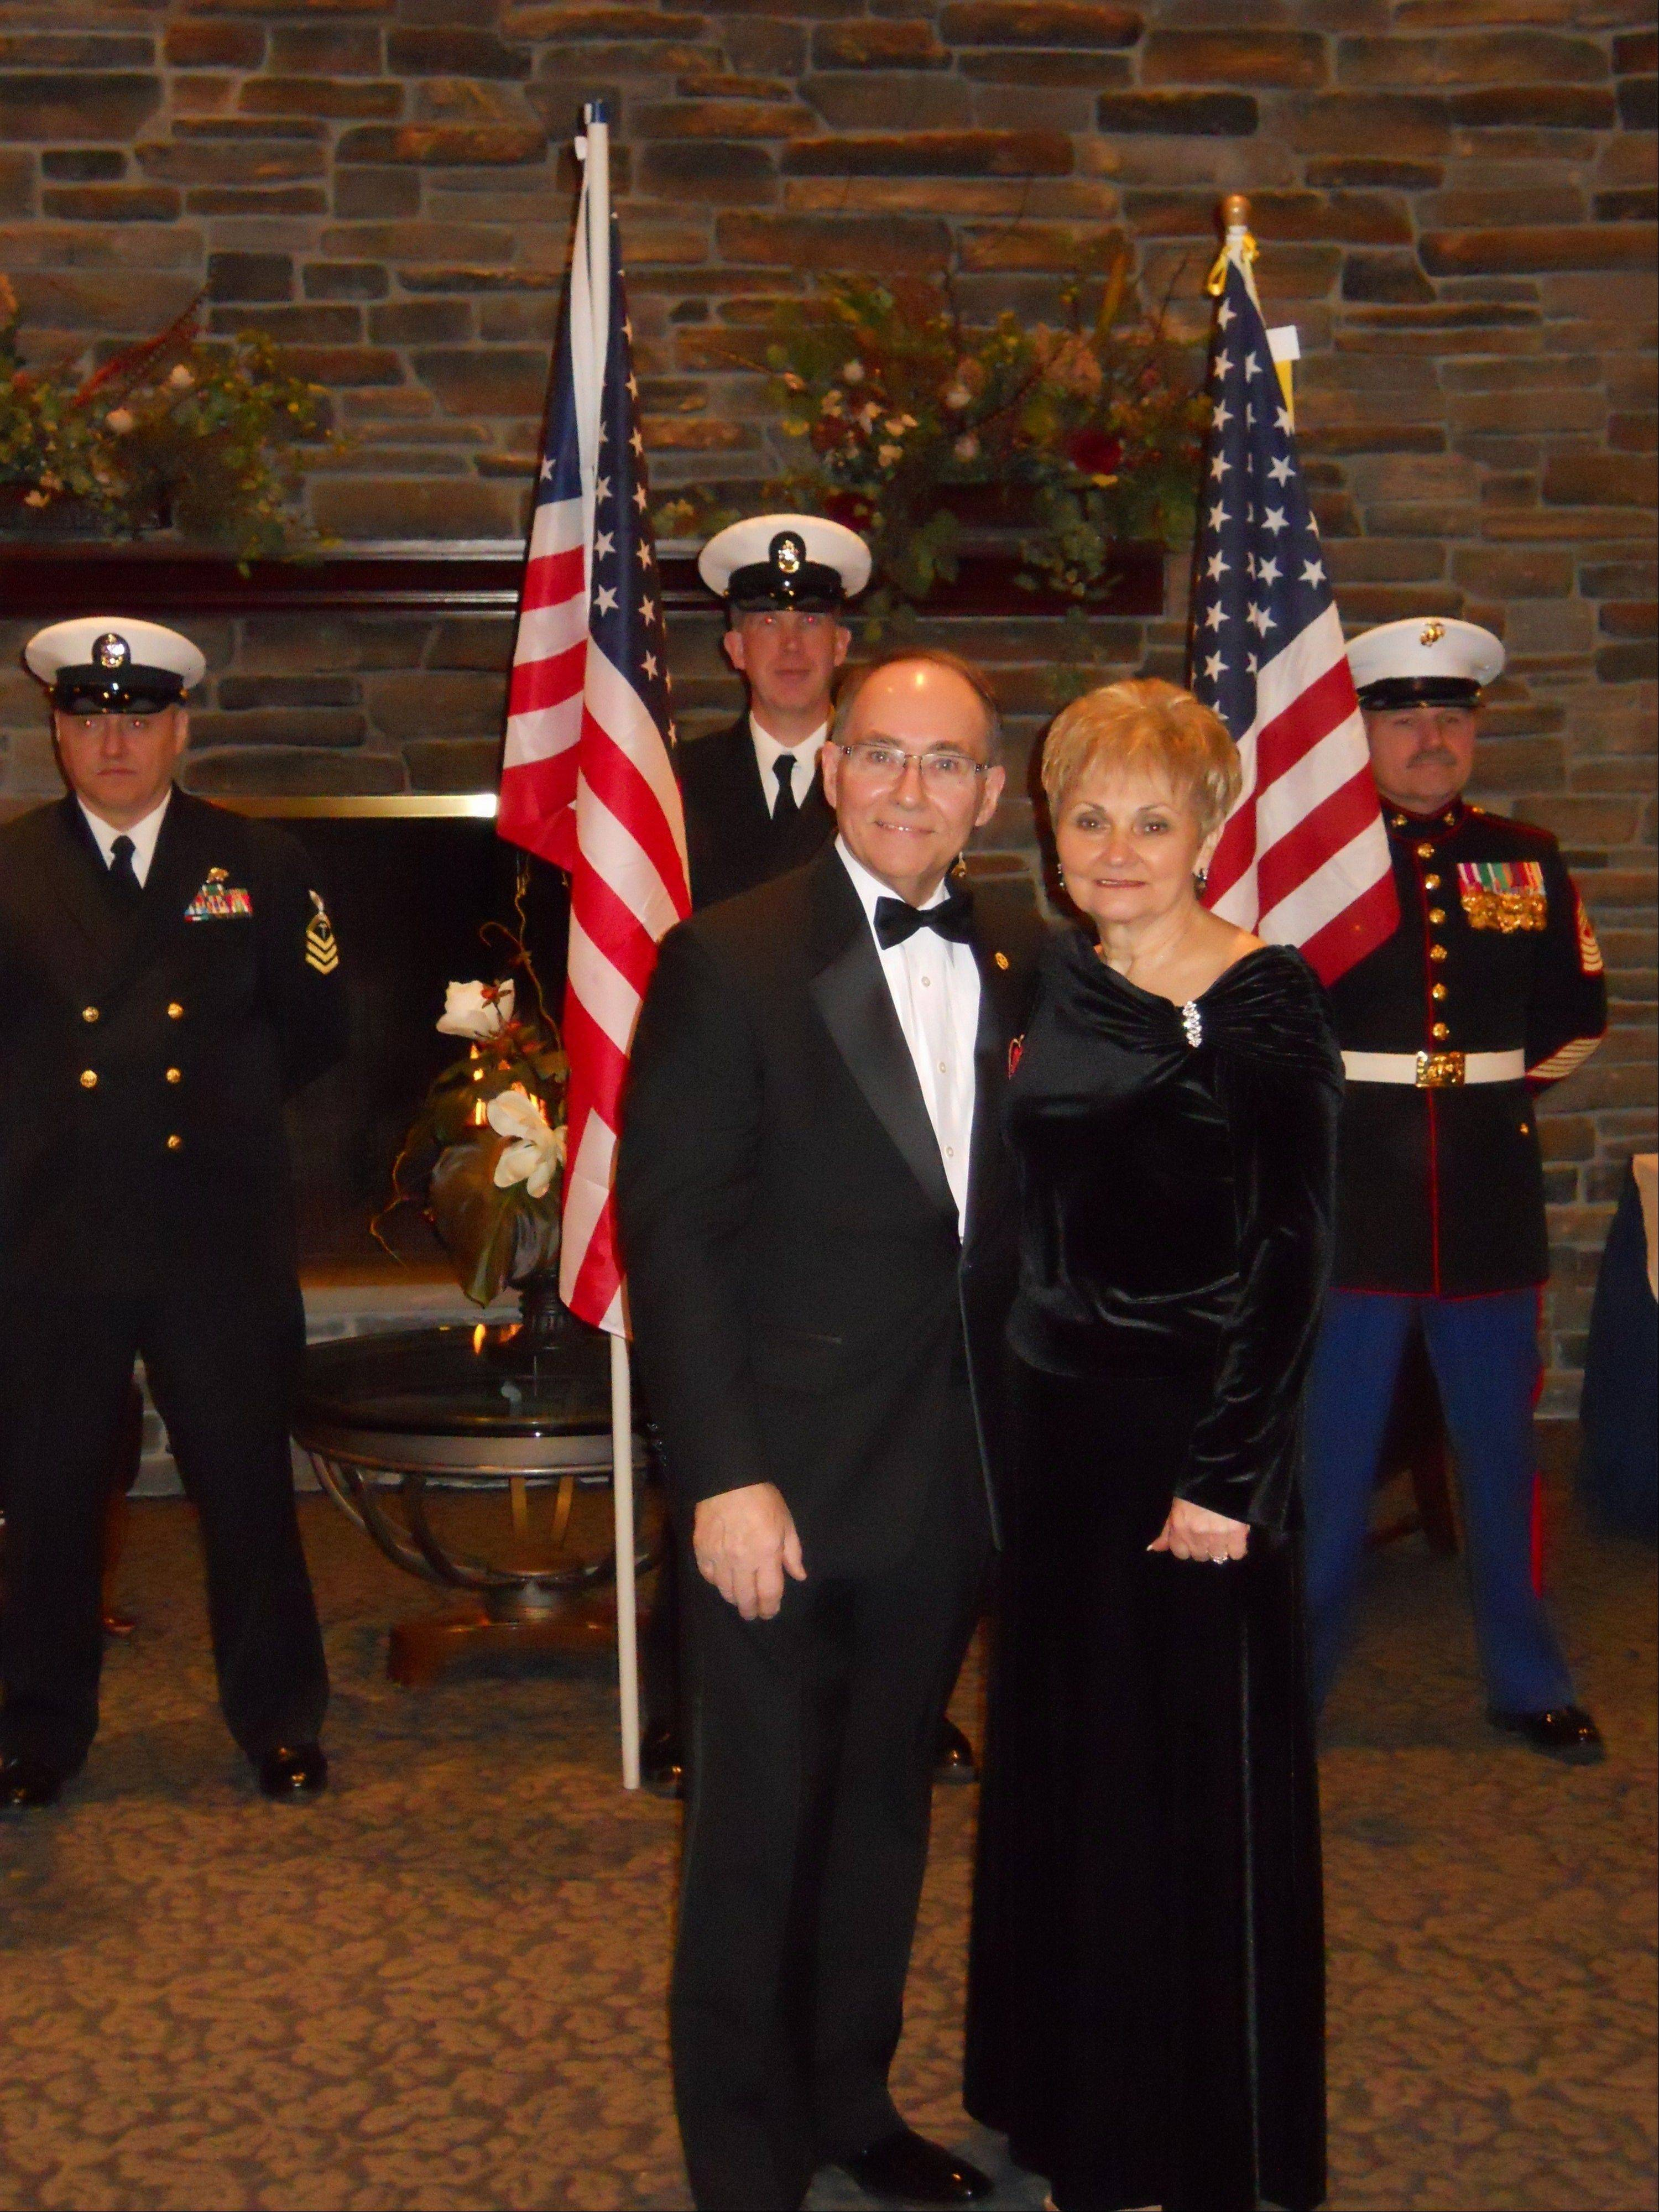 Roy and Georgette Frank greet guests as they arrive at the Hearts Of Valor Ball.